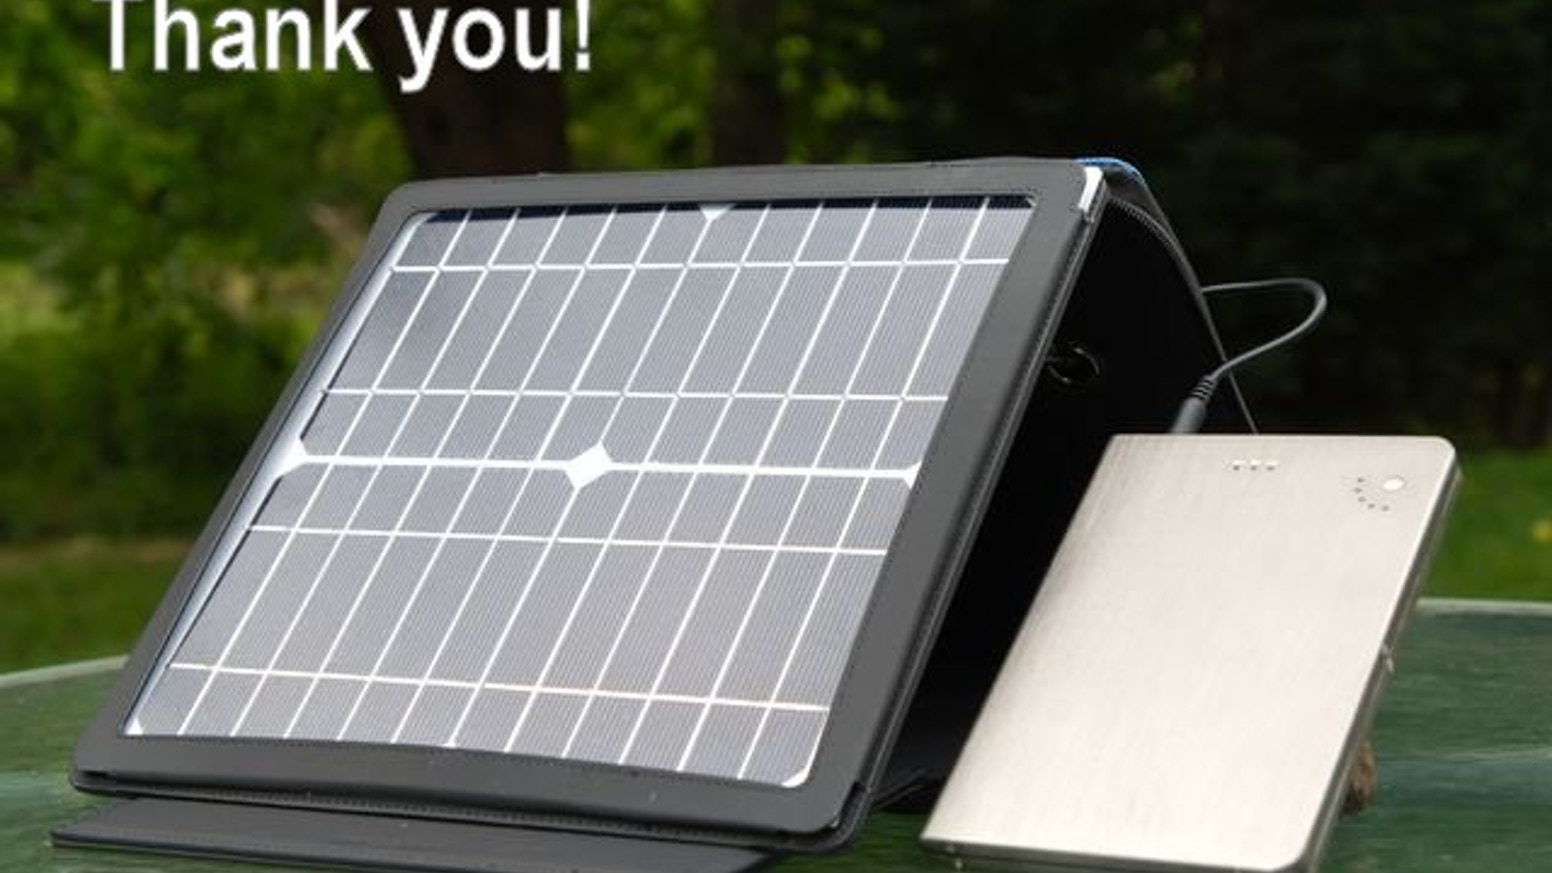 Sunstash Portable Solar Power Charger For Gadgets Laptops By Don The Battery Is Backup Electrical Energy Of Cells In Needs A Stash Capable Powering All Your Devices From Smartphones To